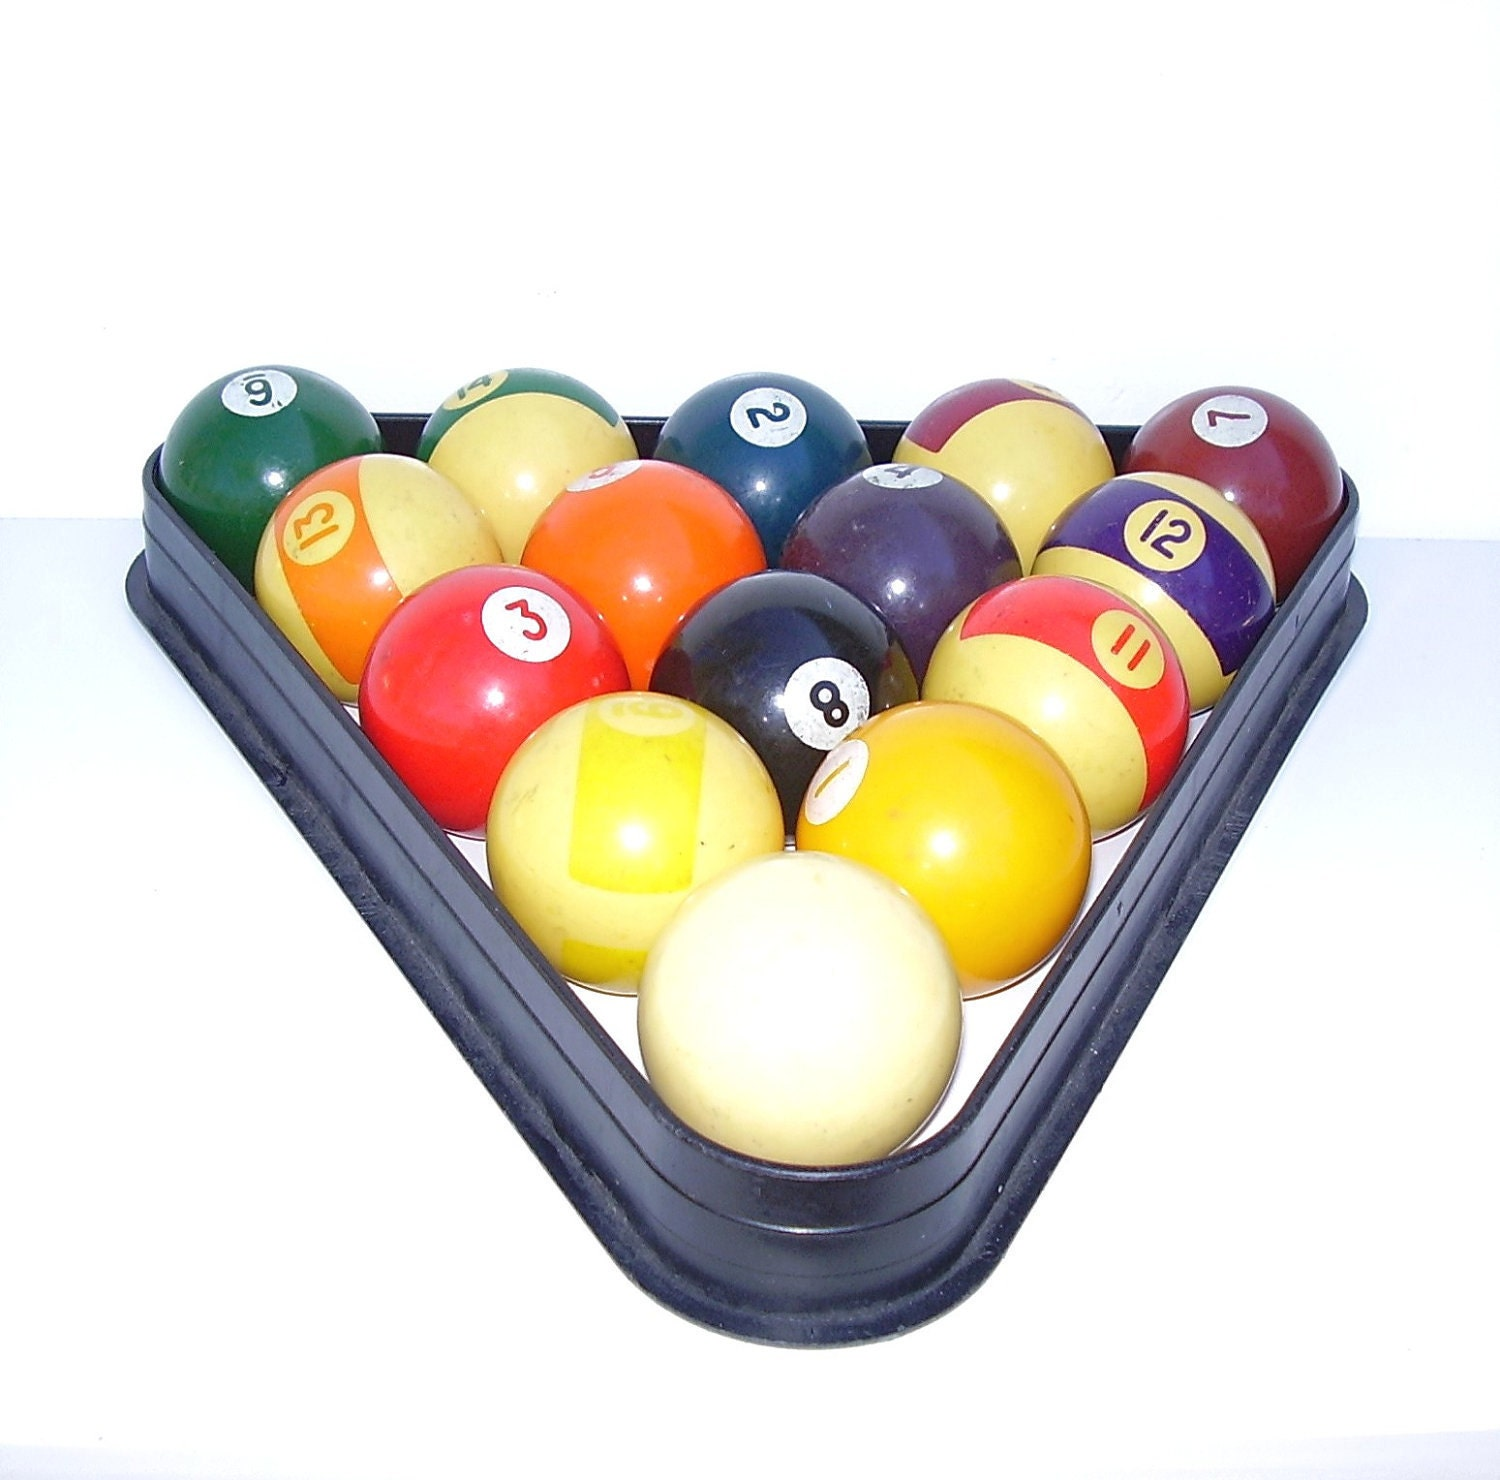 Vintage Billiard Balls Bakelite Pool Table Rack Mid Century